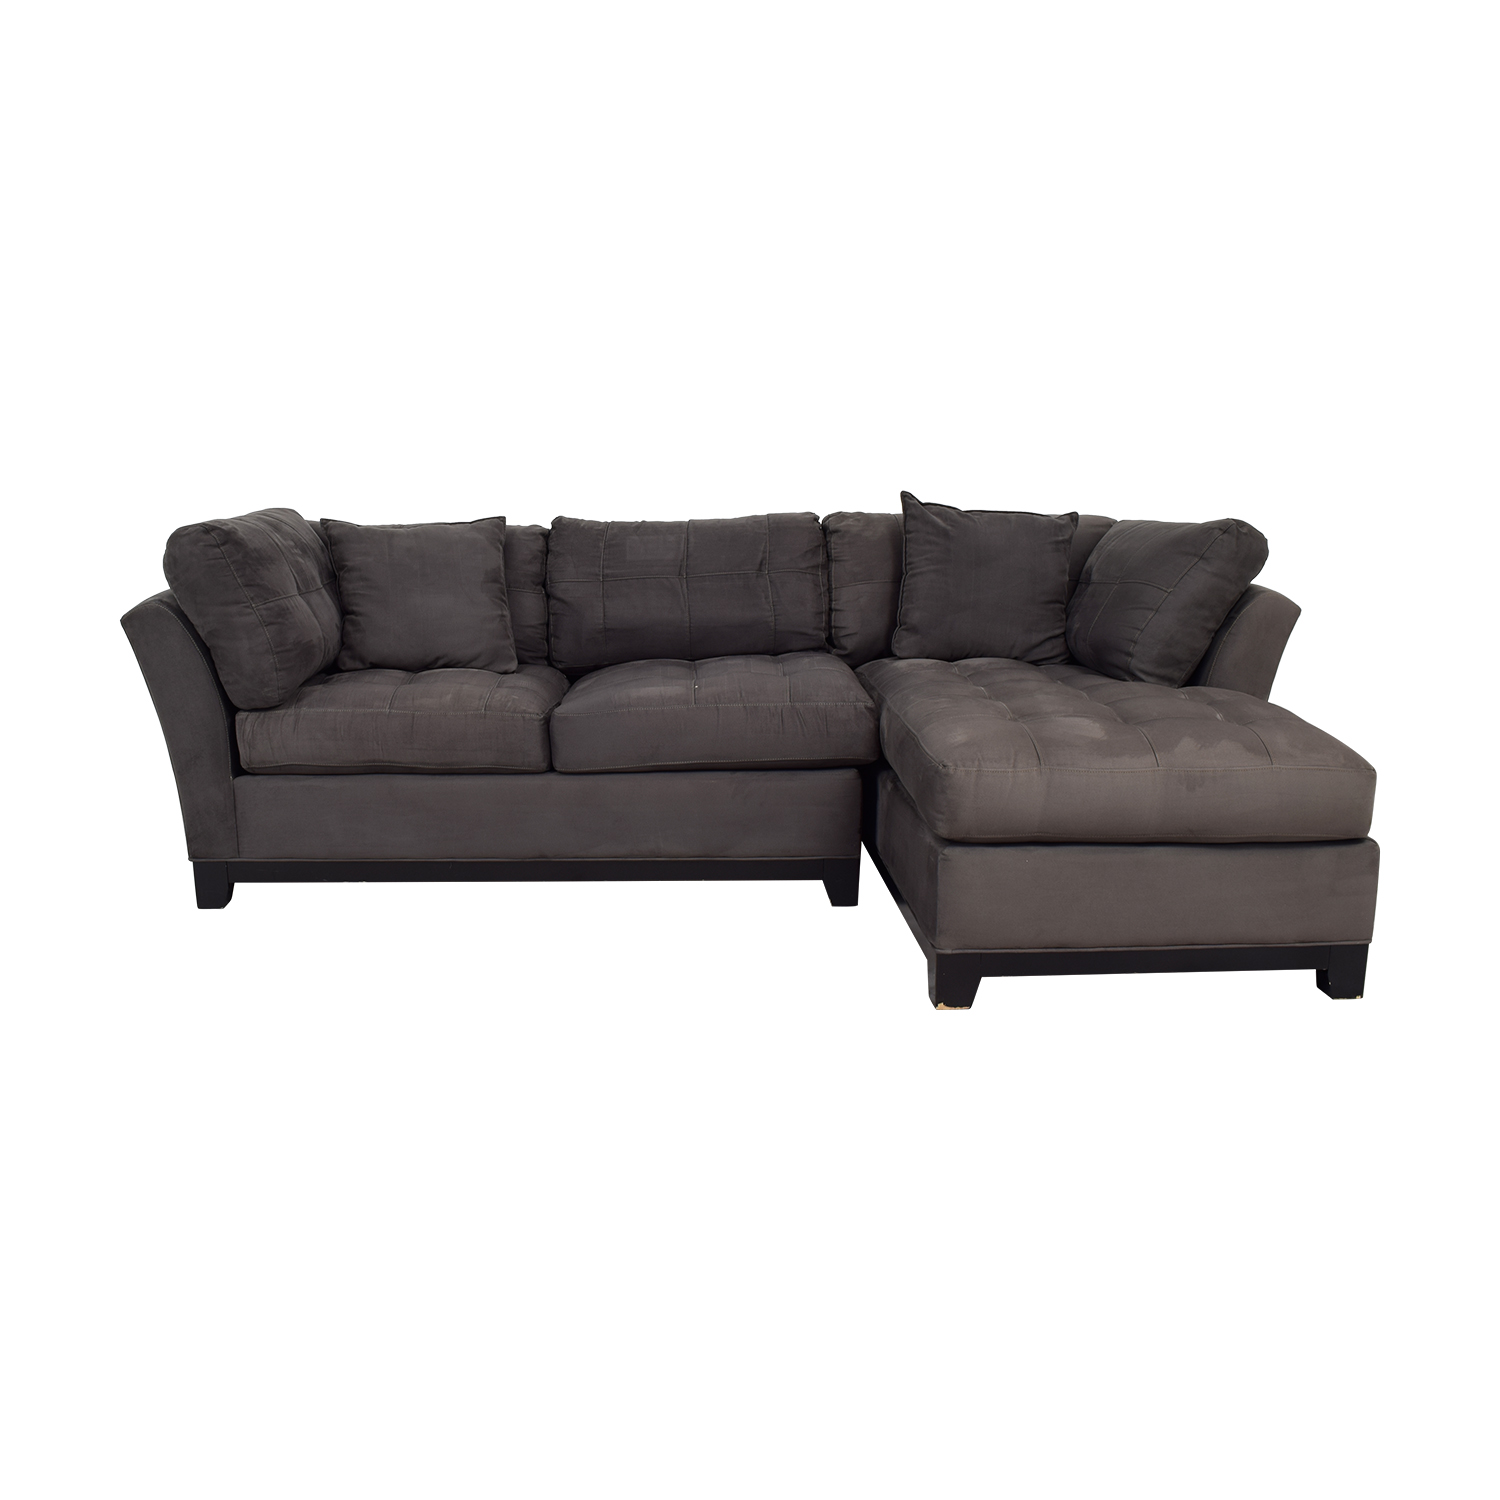 Raymour & Flanigan Cindy Crawford Grey Semi Tufted Sectional / Sectionals